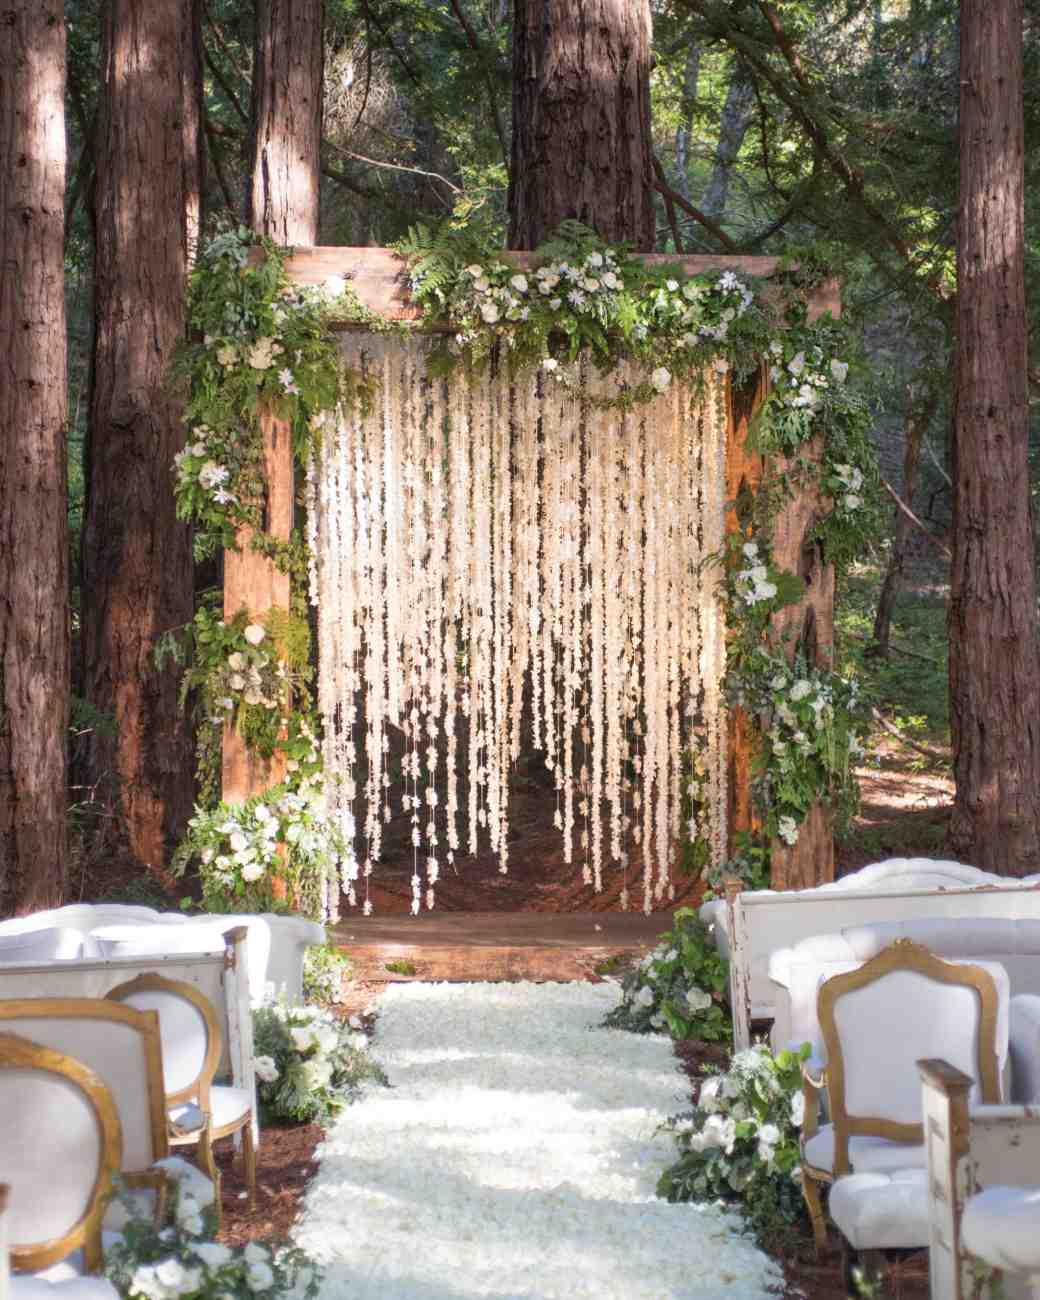 breelayne-hunter-wedding-california-ceremony-chuppah-arch-0060-santa-lucia-preserve-fairy-woodsy-organic-s112849_vert